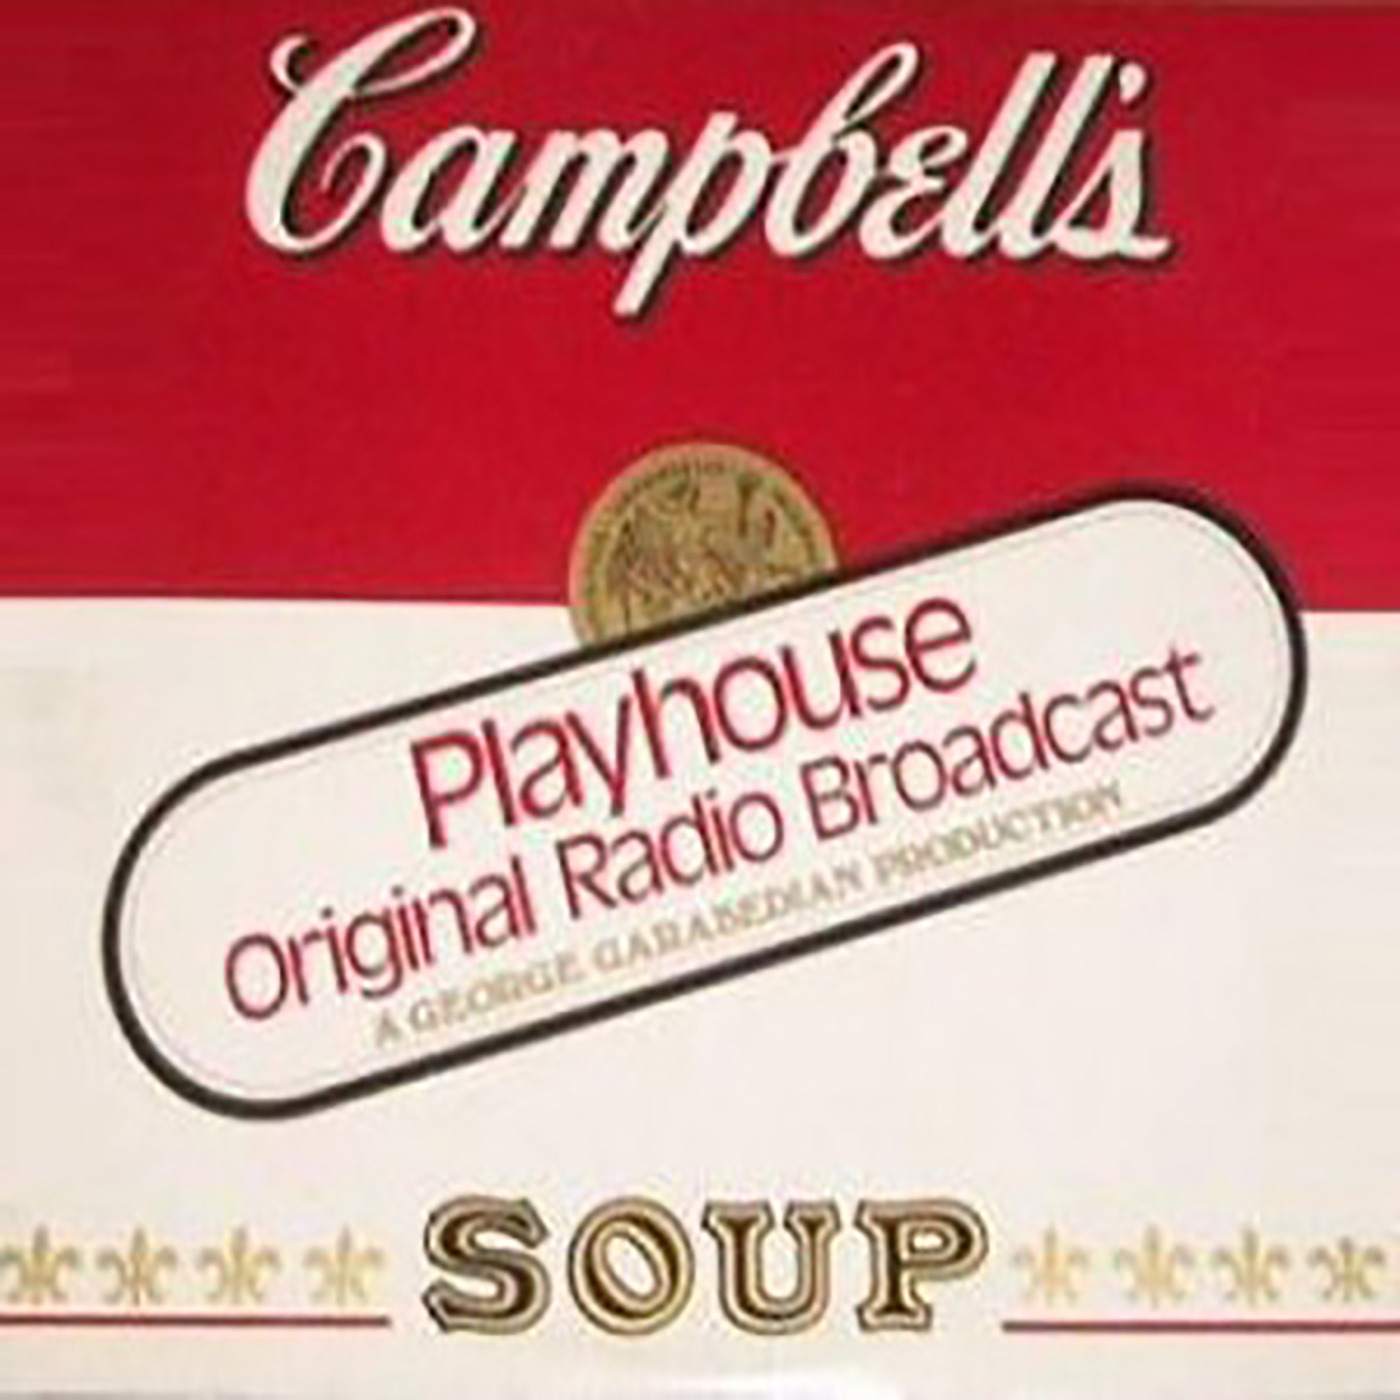 The Campbell Playhouse